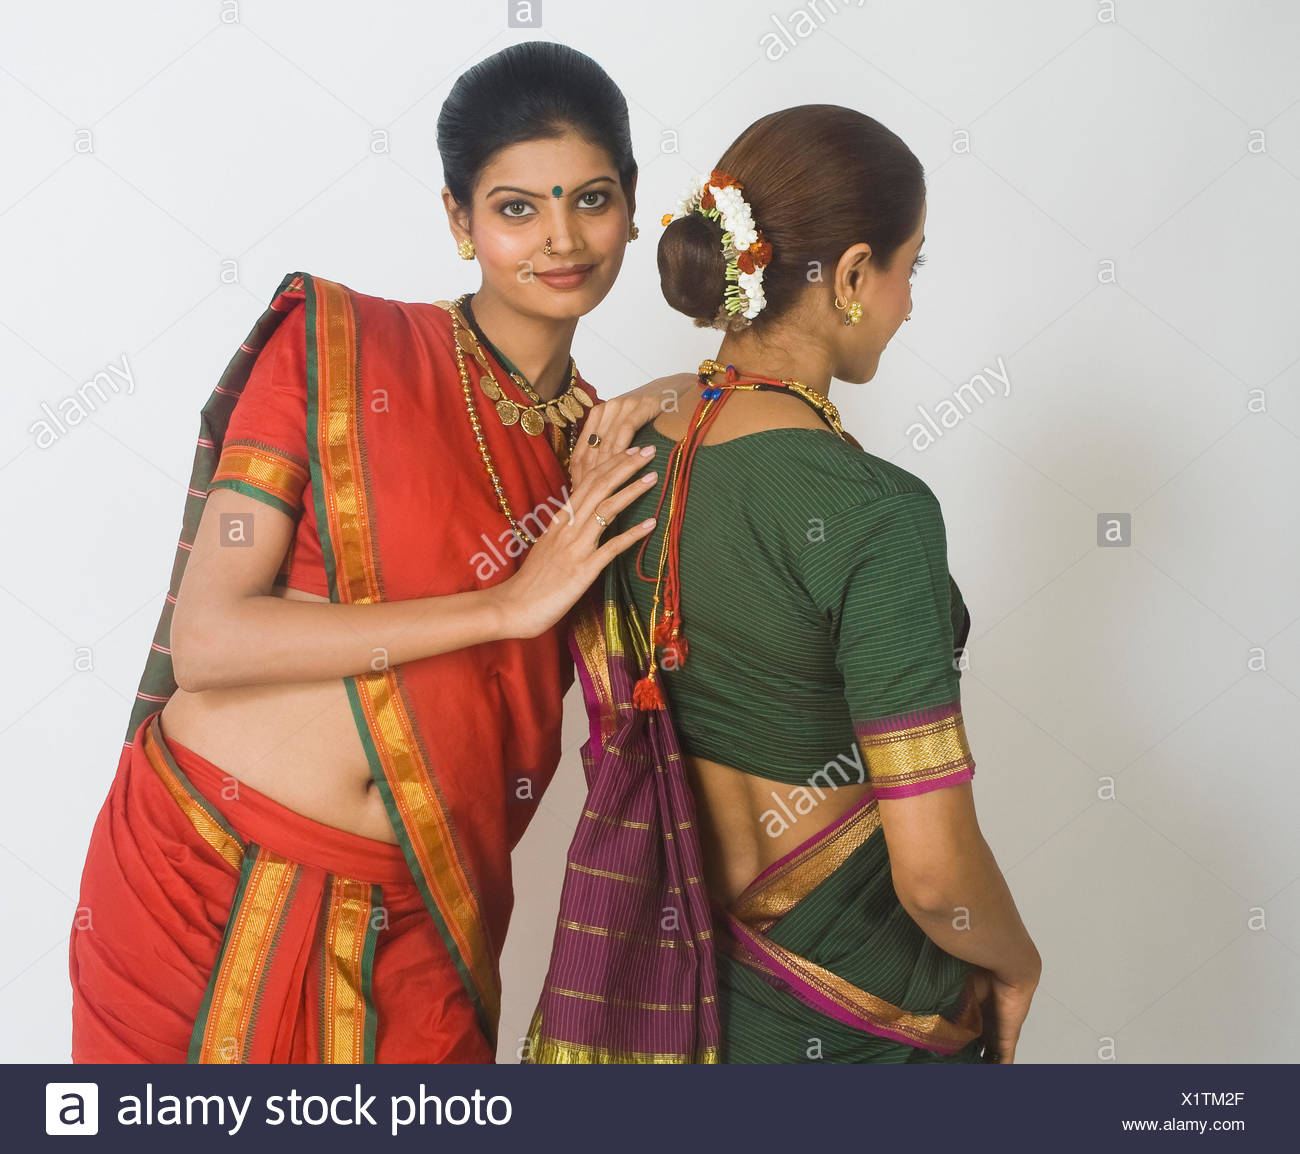 Portrait of a woman standing with her friend - Stock Image